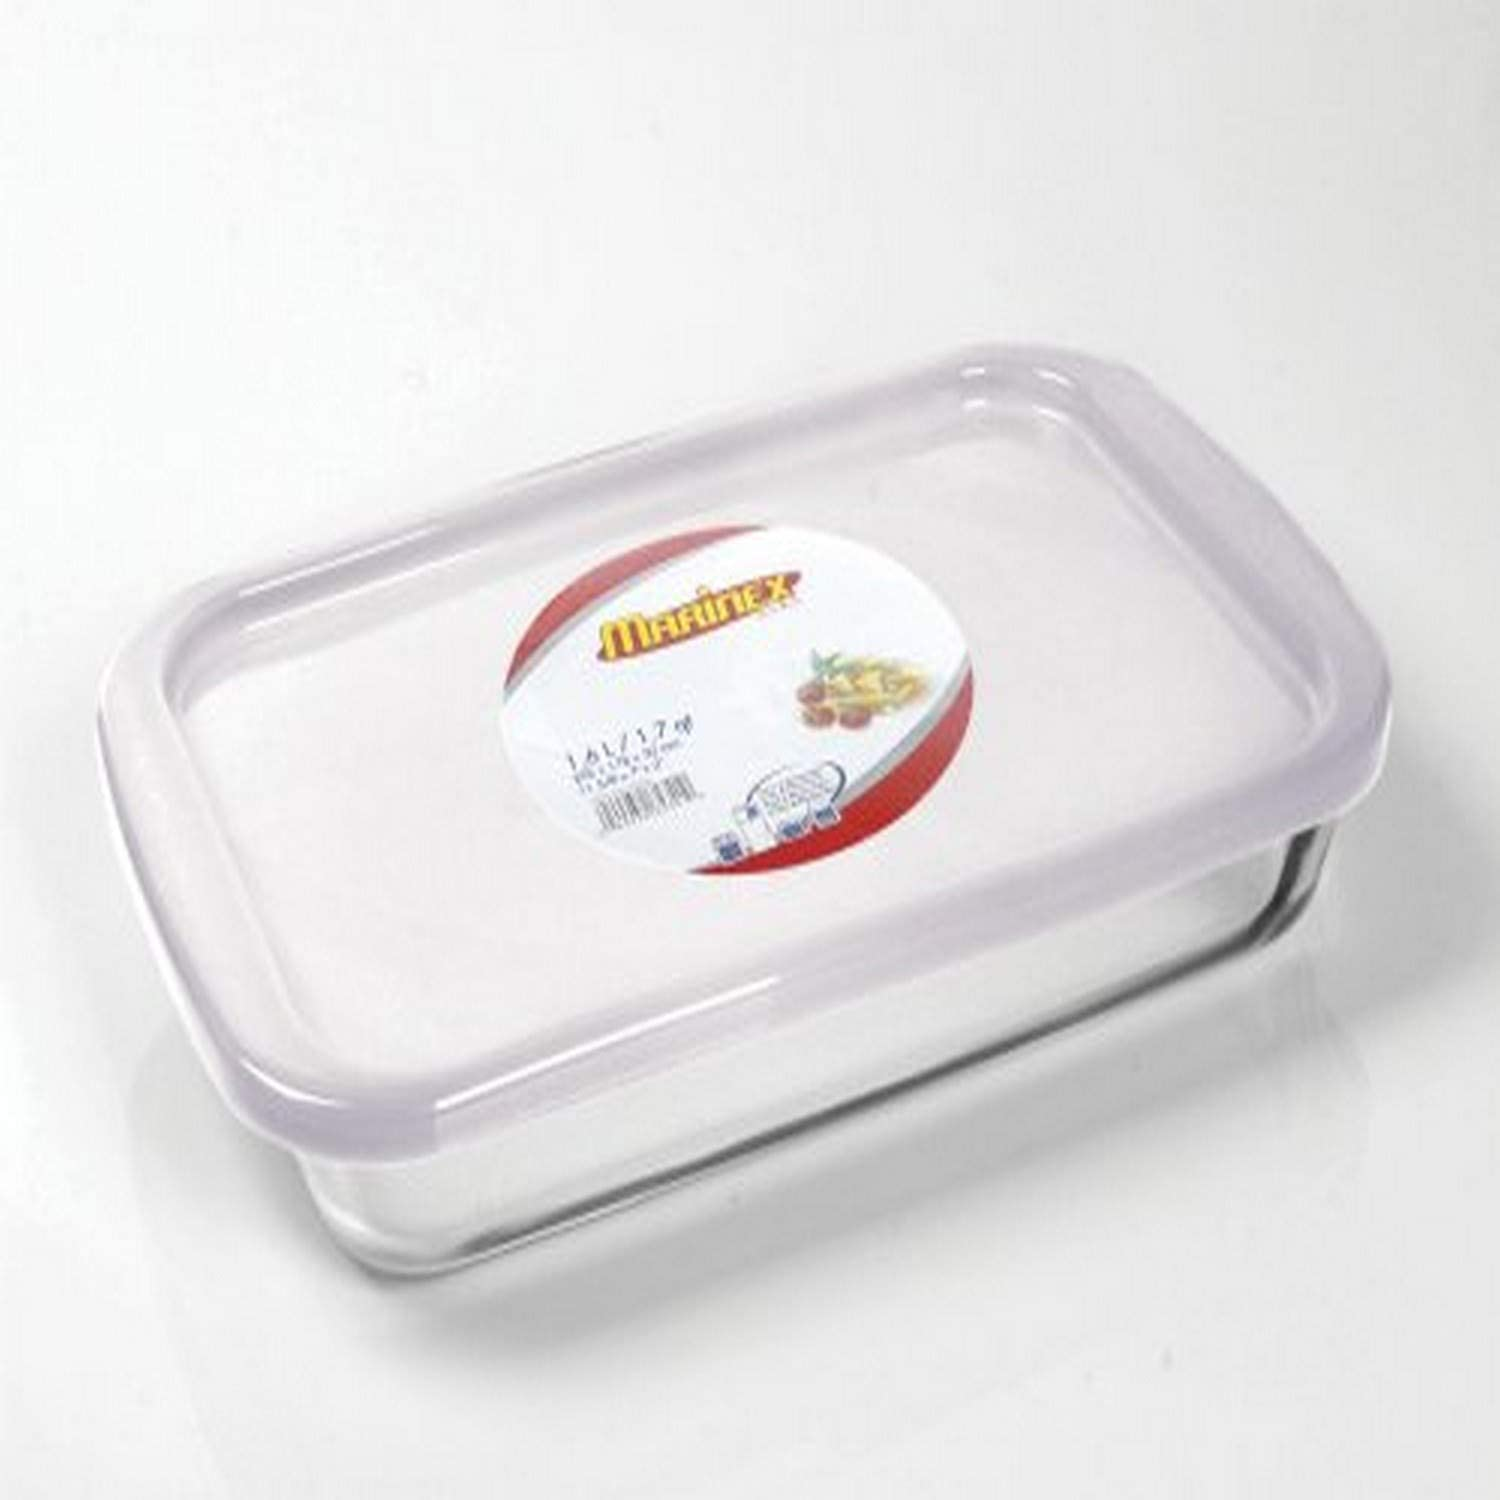 Marinex Bakeware Medium Rectangular Glass Roaster With Plastic Lid 13 5 8 X 8 1 8 X 2 Amazon Co Uk Kitchen Home